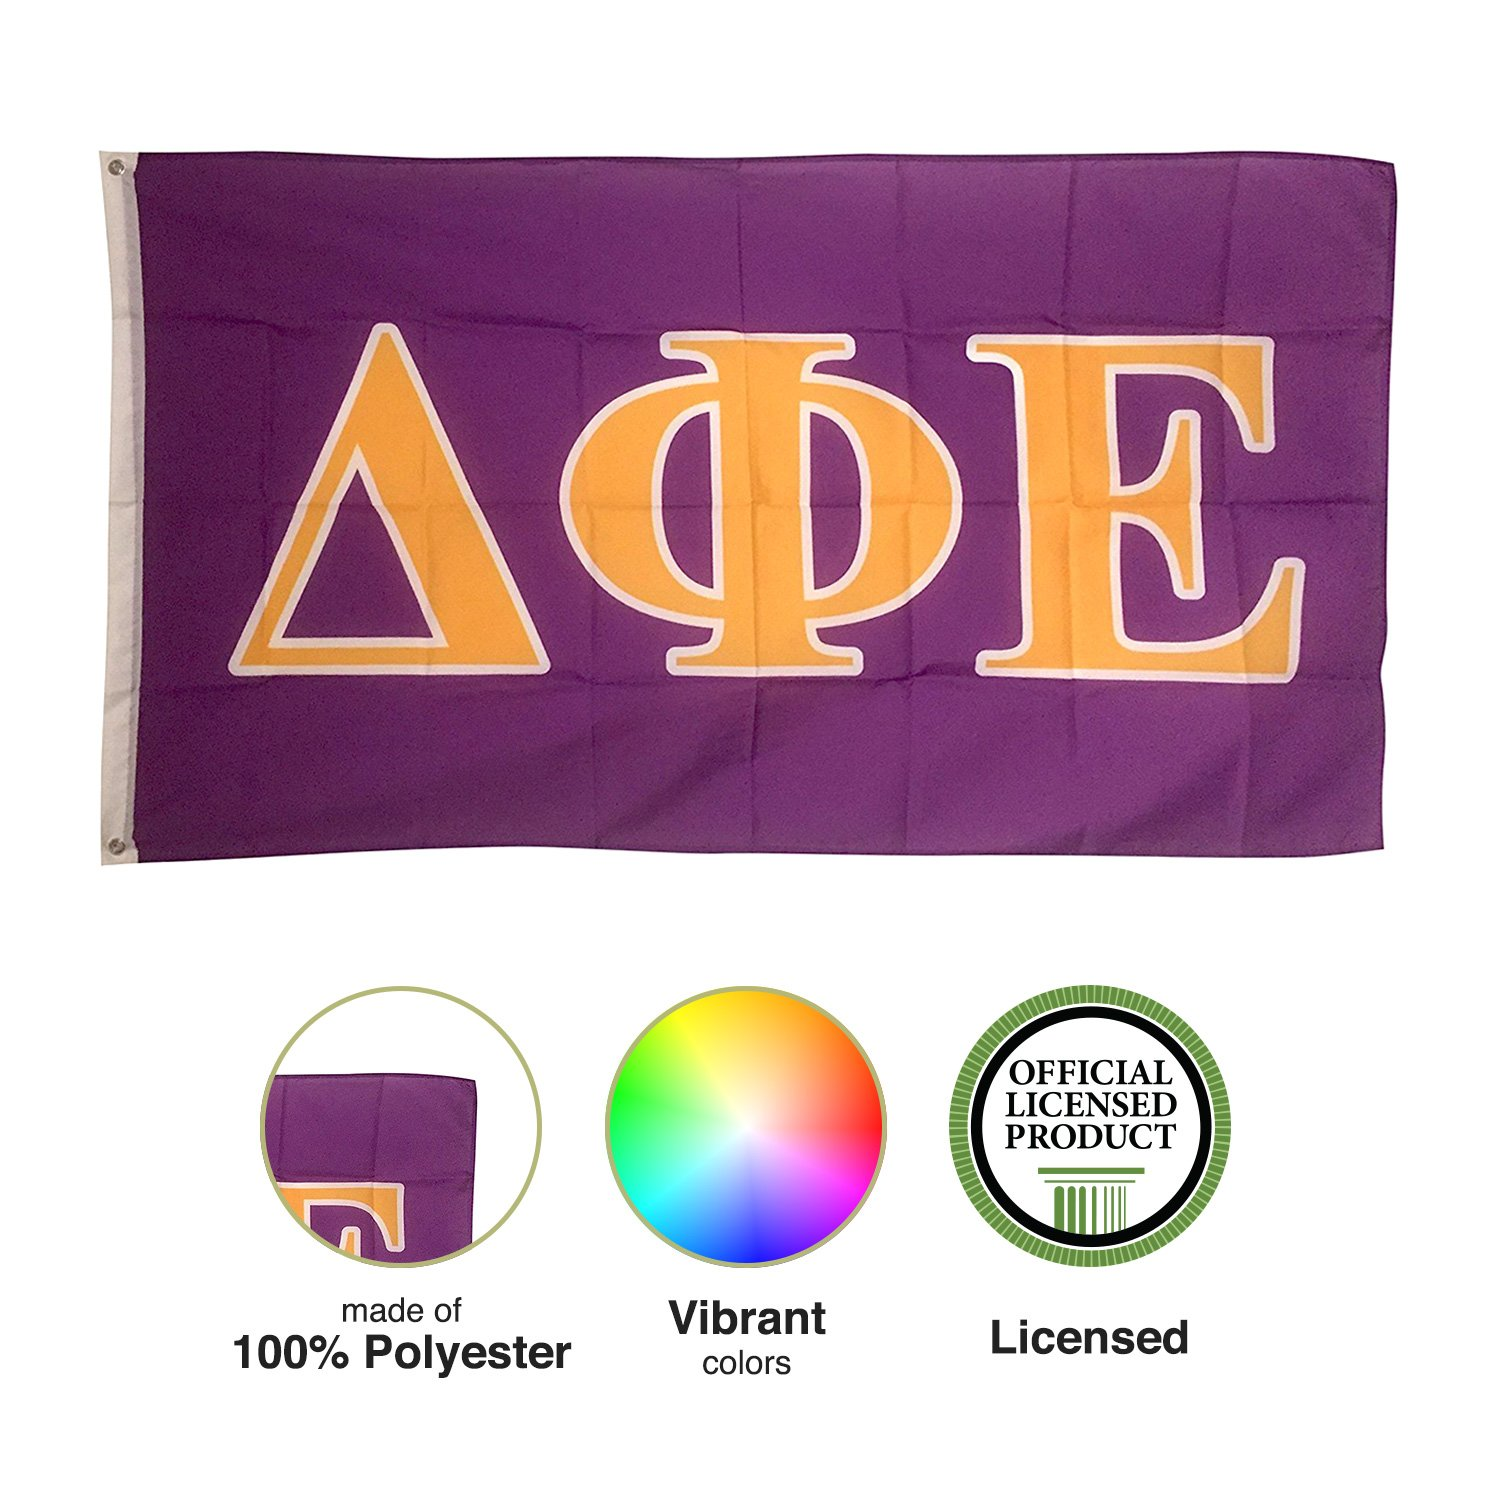 Amazon.com : Delta Phi Epsilon Letter Sorority Flag Greek Letter Use as a Banner 3 x 5 Feet Sign Decor DPhie : Other Products : Garden & Outdoor